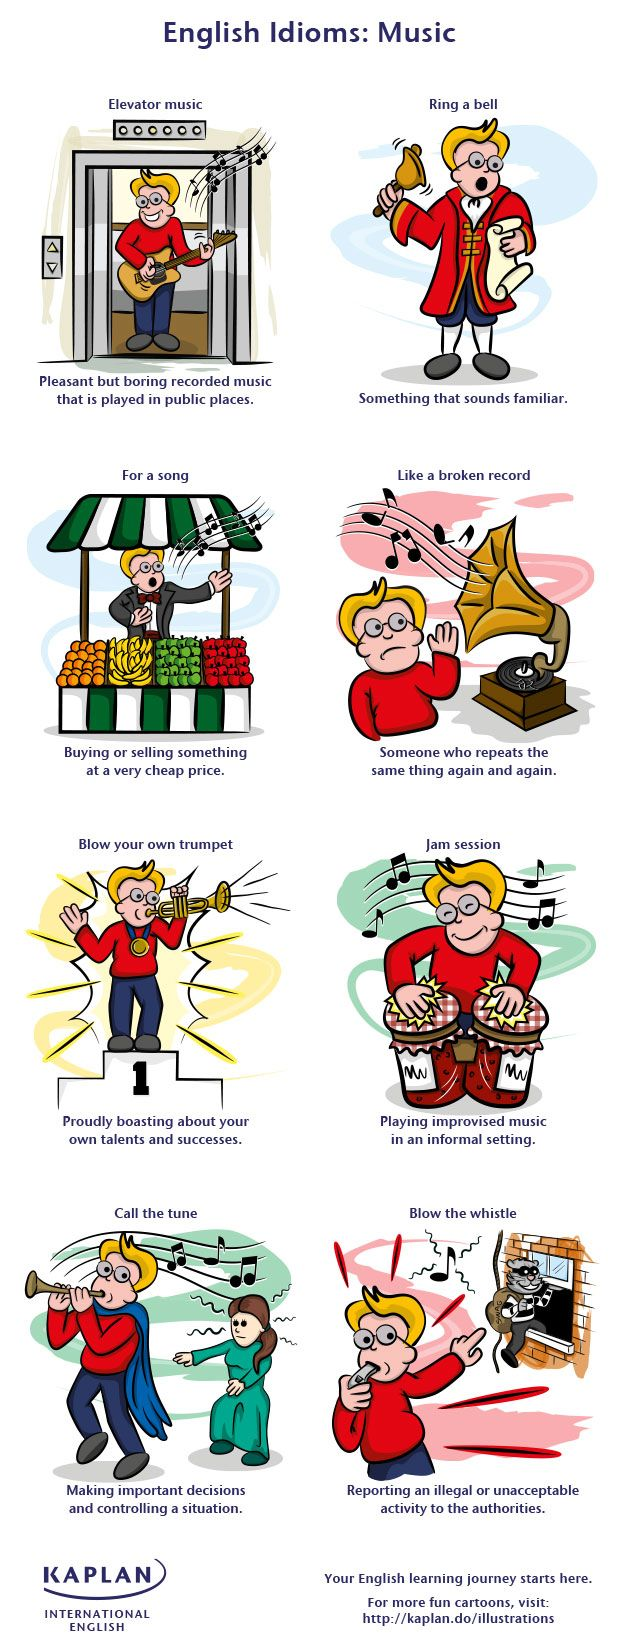 10 Music Idioms for you to enjoy